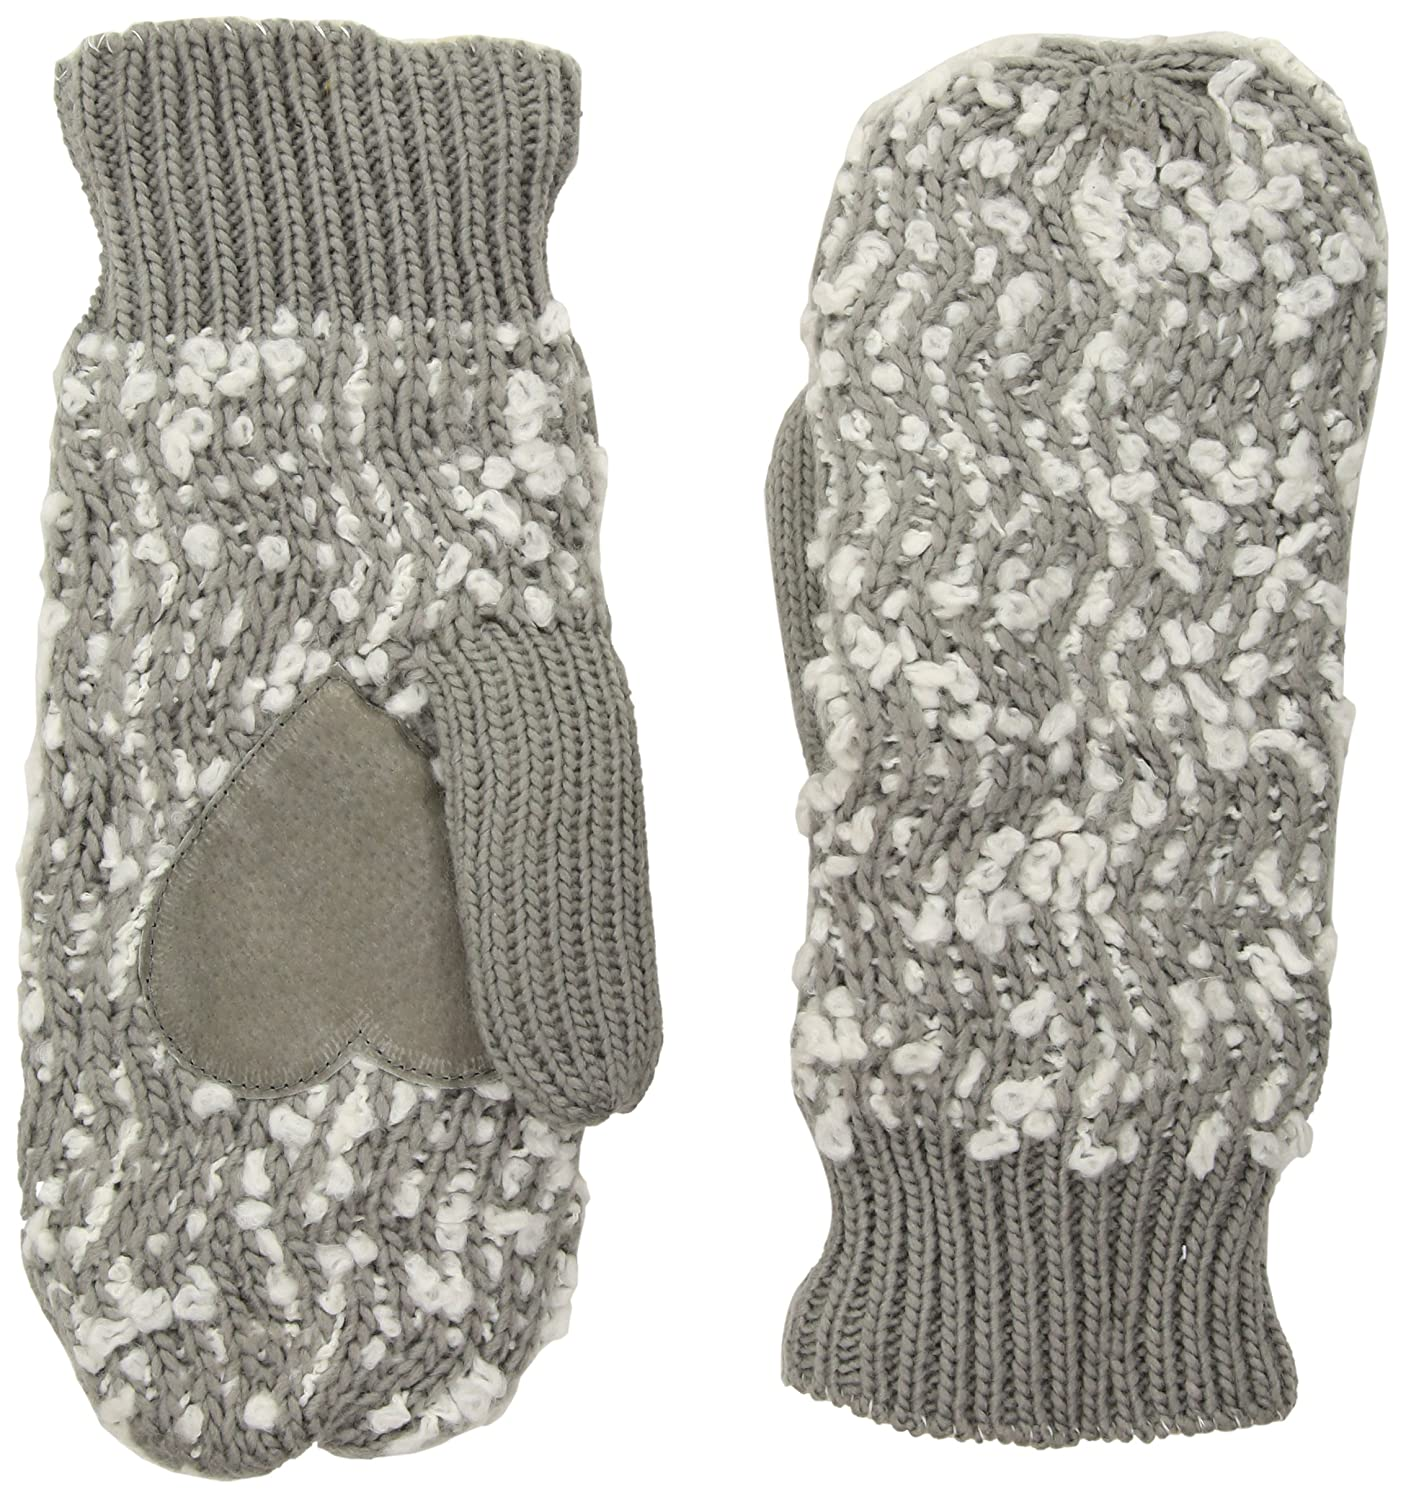 Isotoner Women/'s Chunky Cable Knit SherpaSoft Mittens